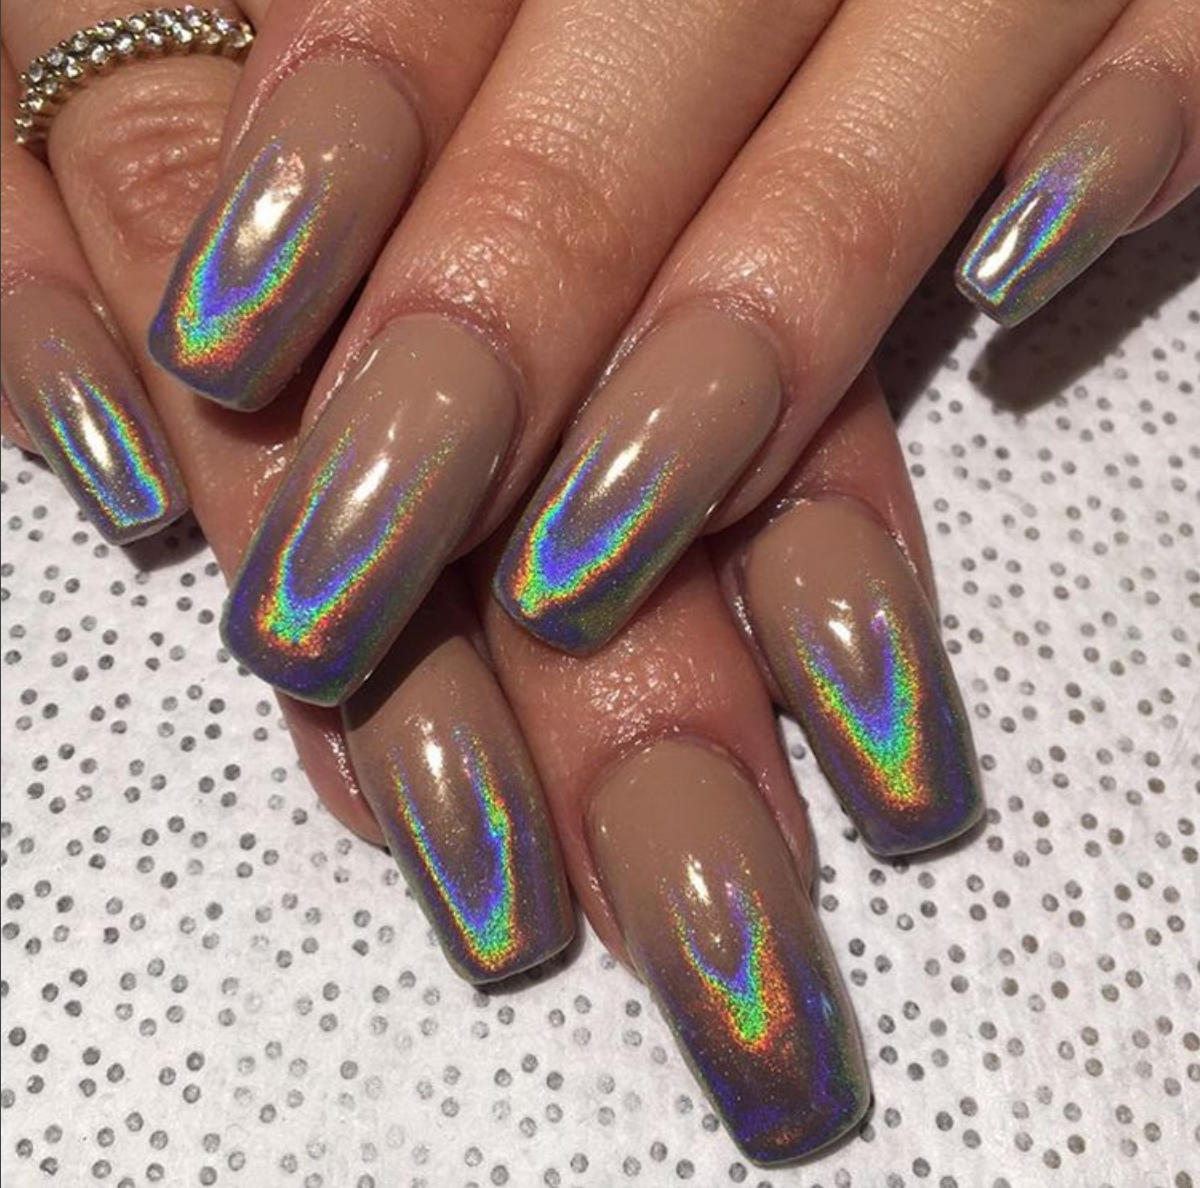 15 CRAZY NAIL ART INSPO FROM VANITY PROJECTS - nye inspired ...